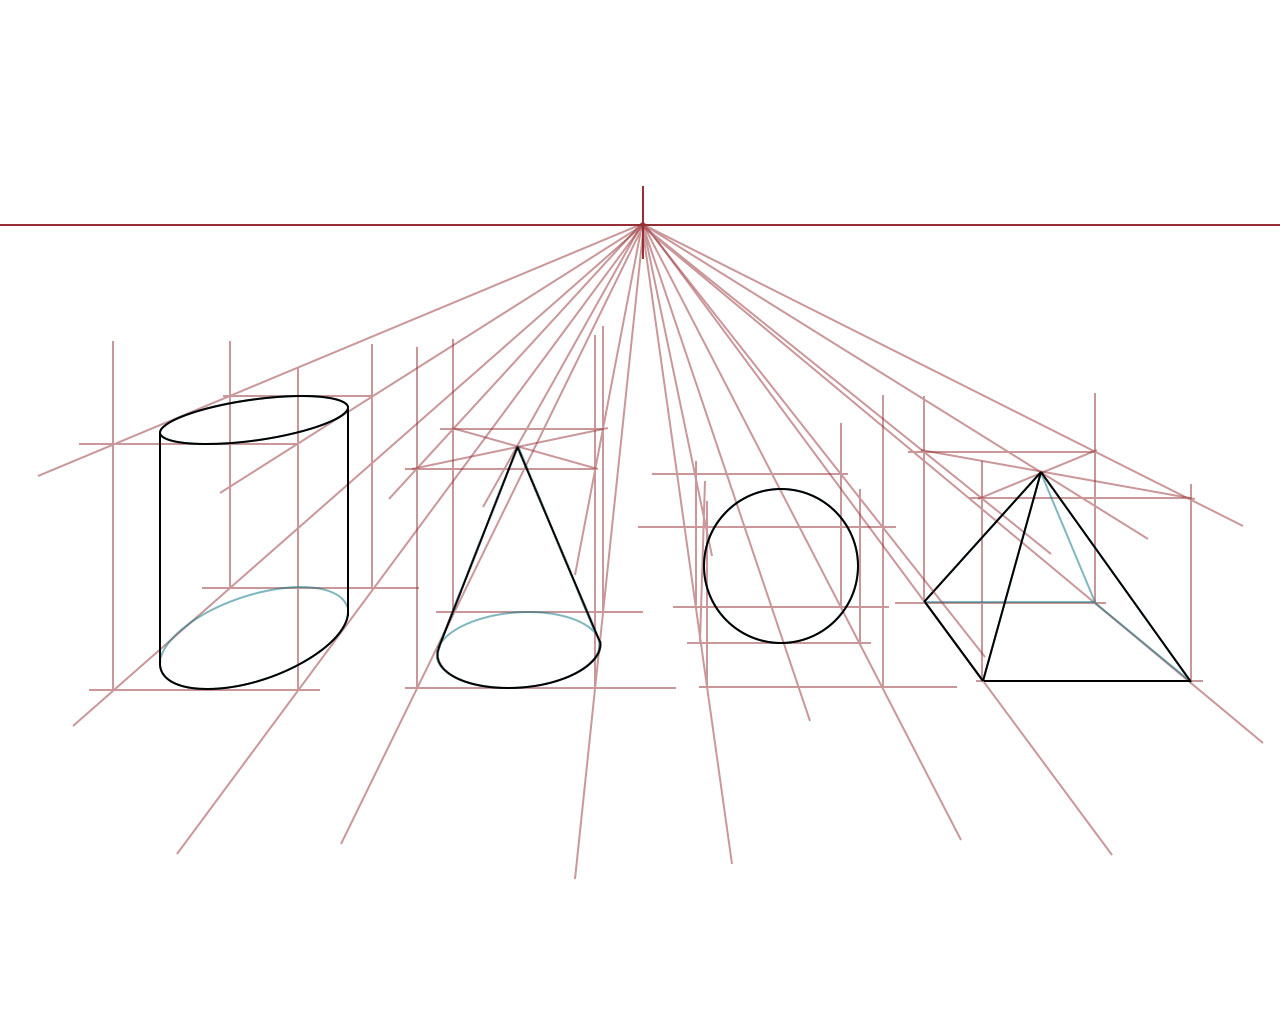 Drawn pyramid point perspective Photoshop: from to in the